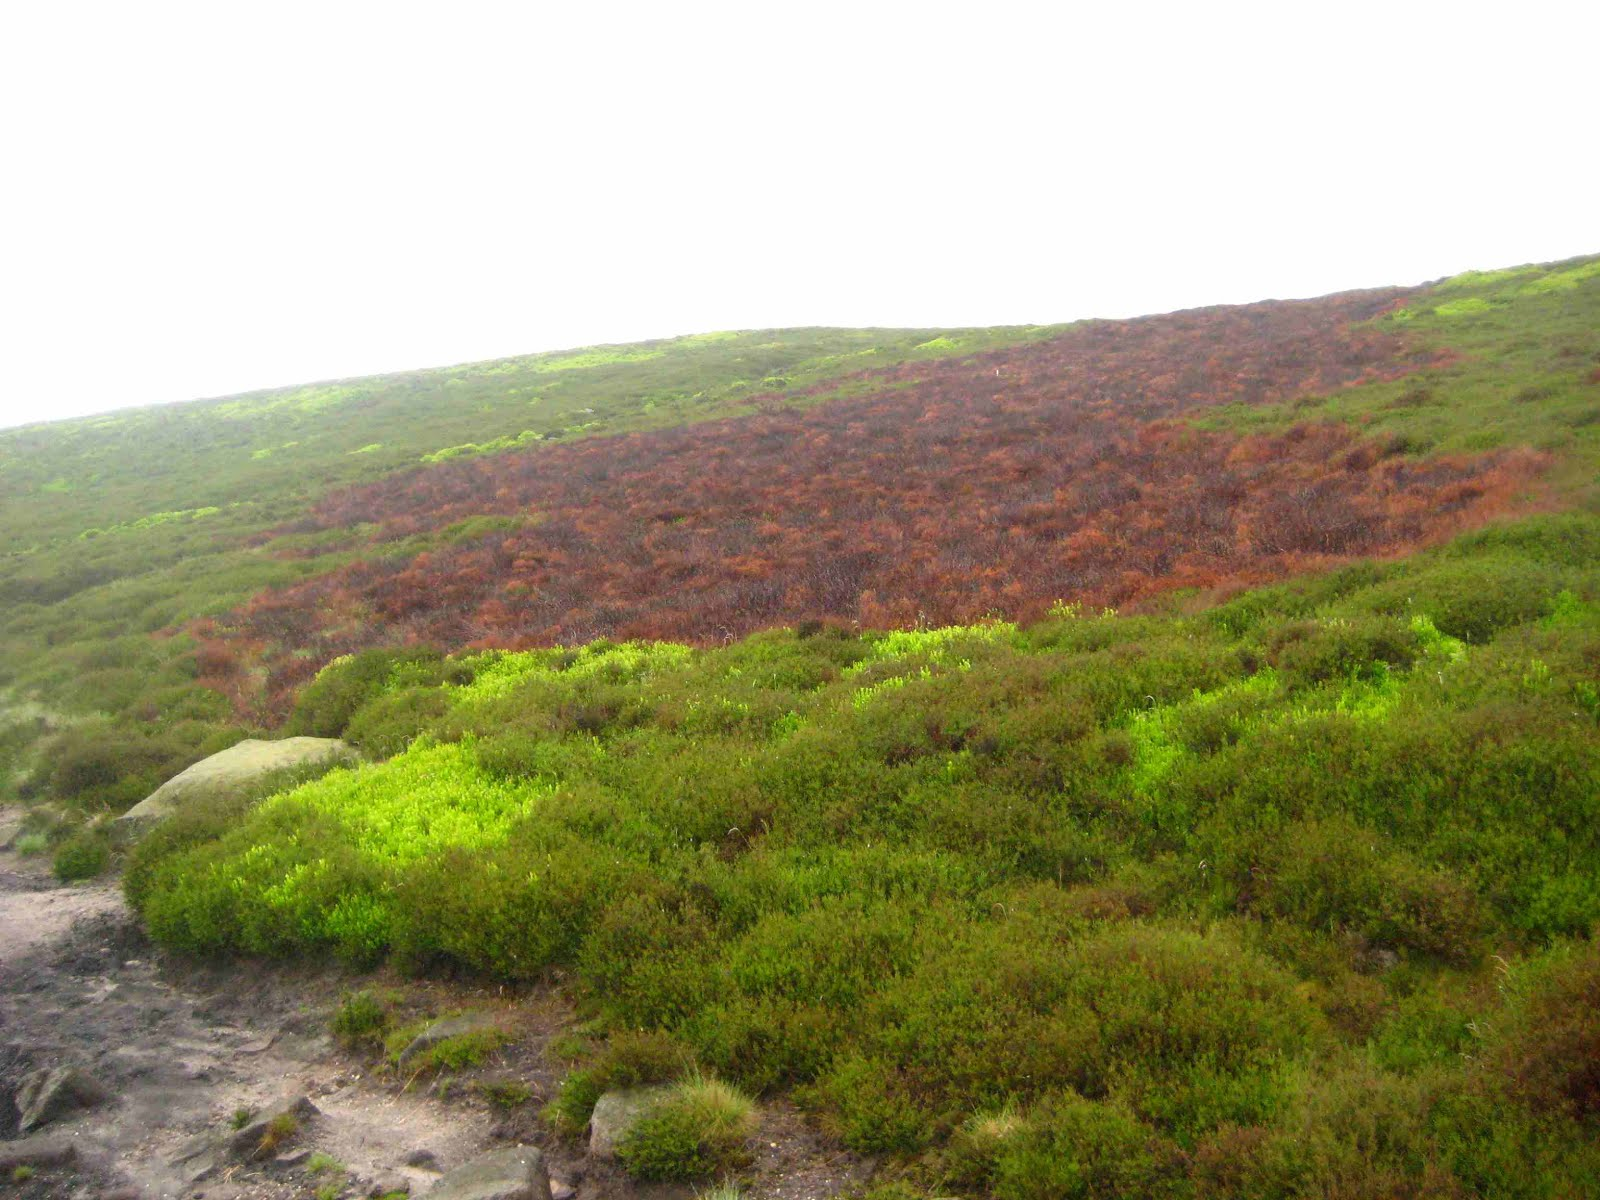 Moorland on Kinder Scout plateau, Derbyshire